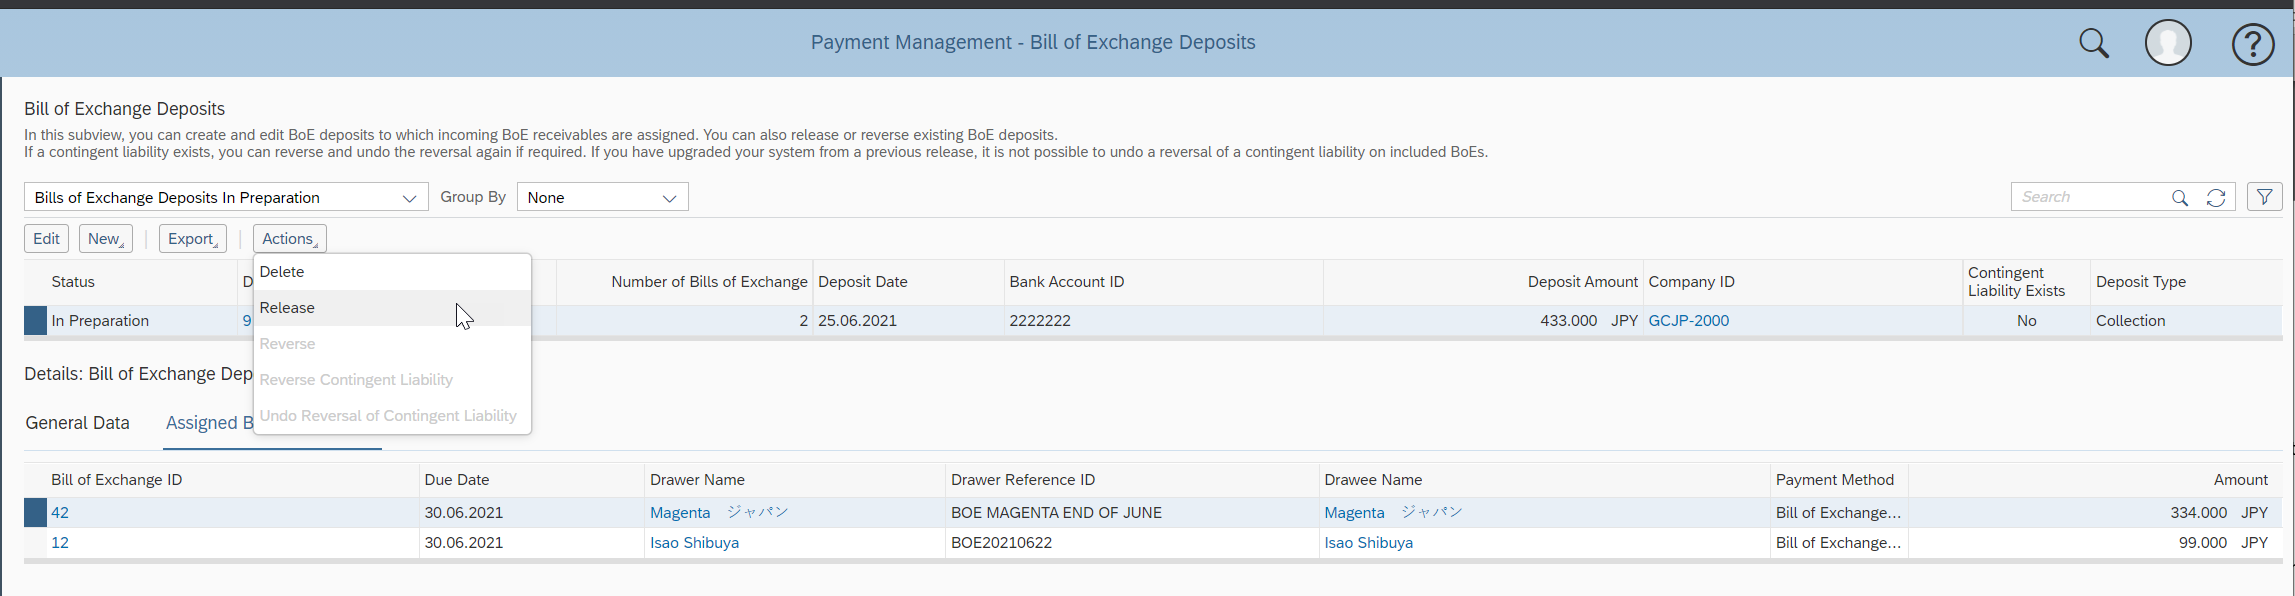 Release%20the%20Bill%20of%20Exchange